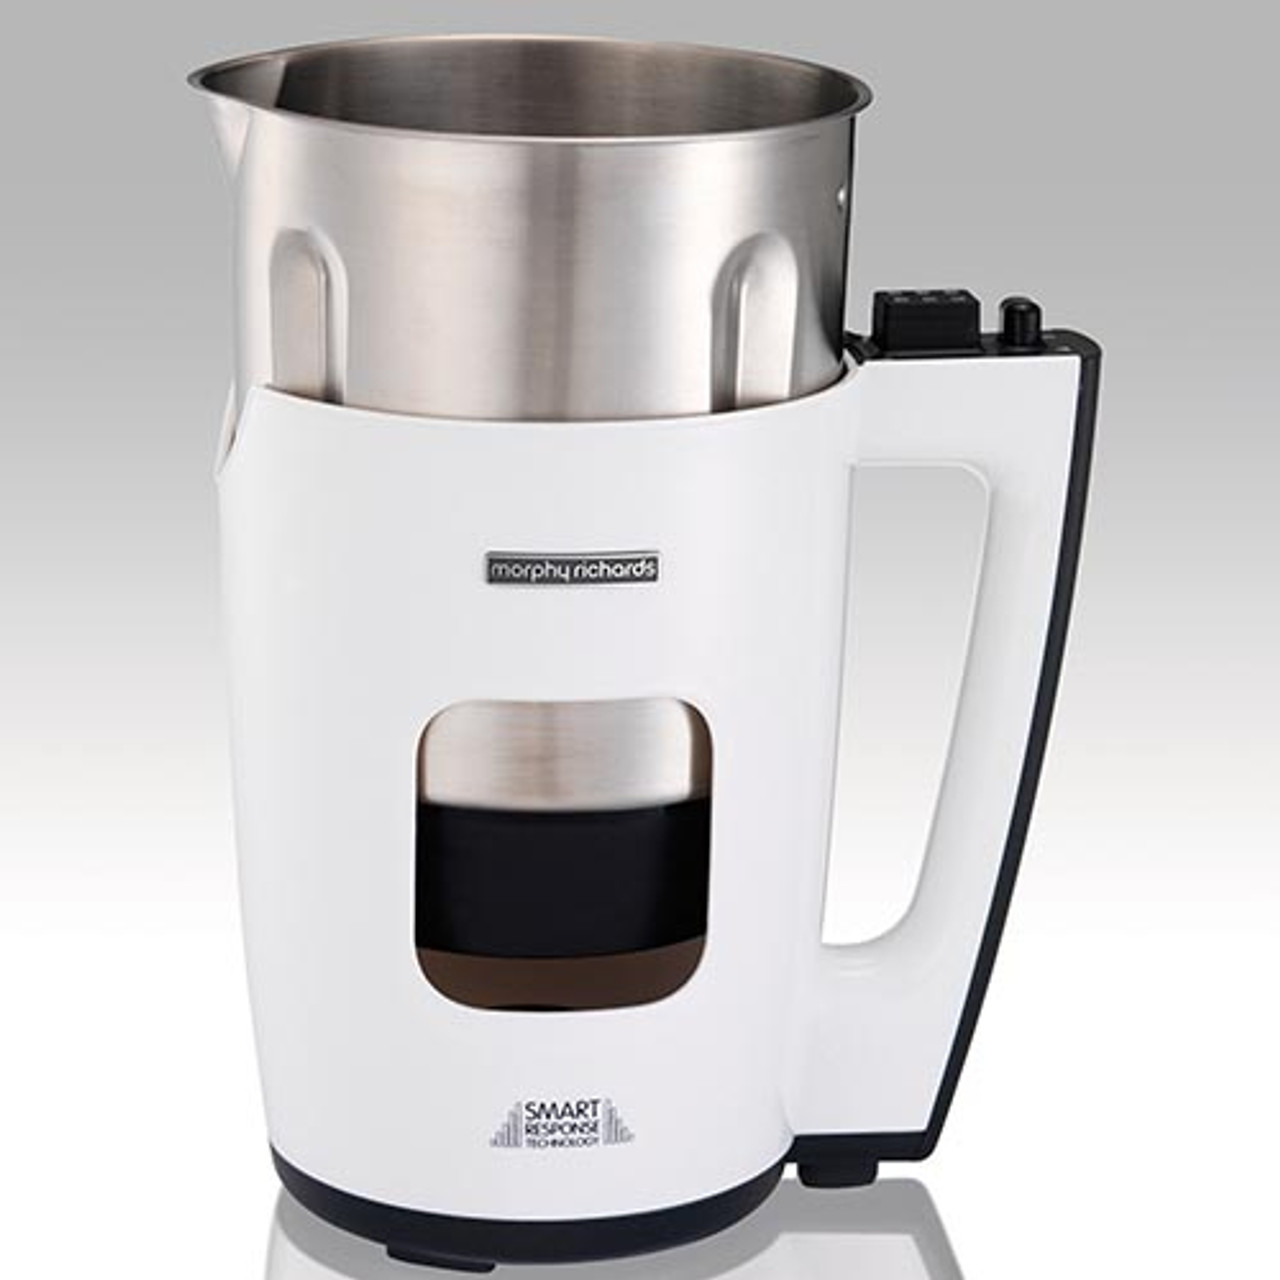 Morphy Richards 501020 Total Control Automatic Soup Maker Machine